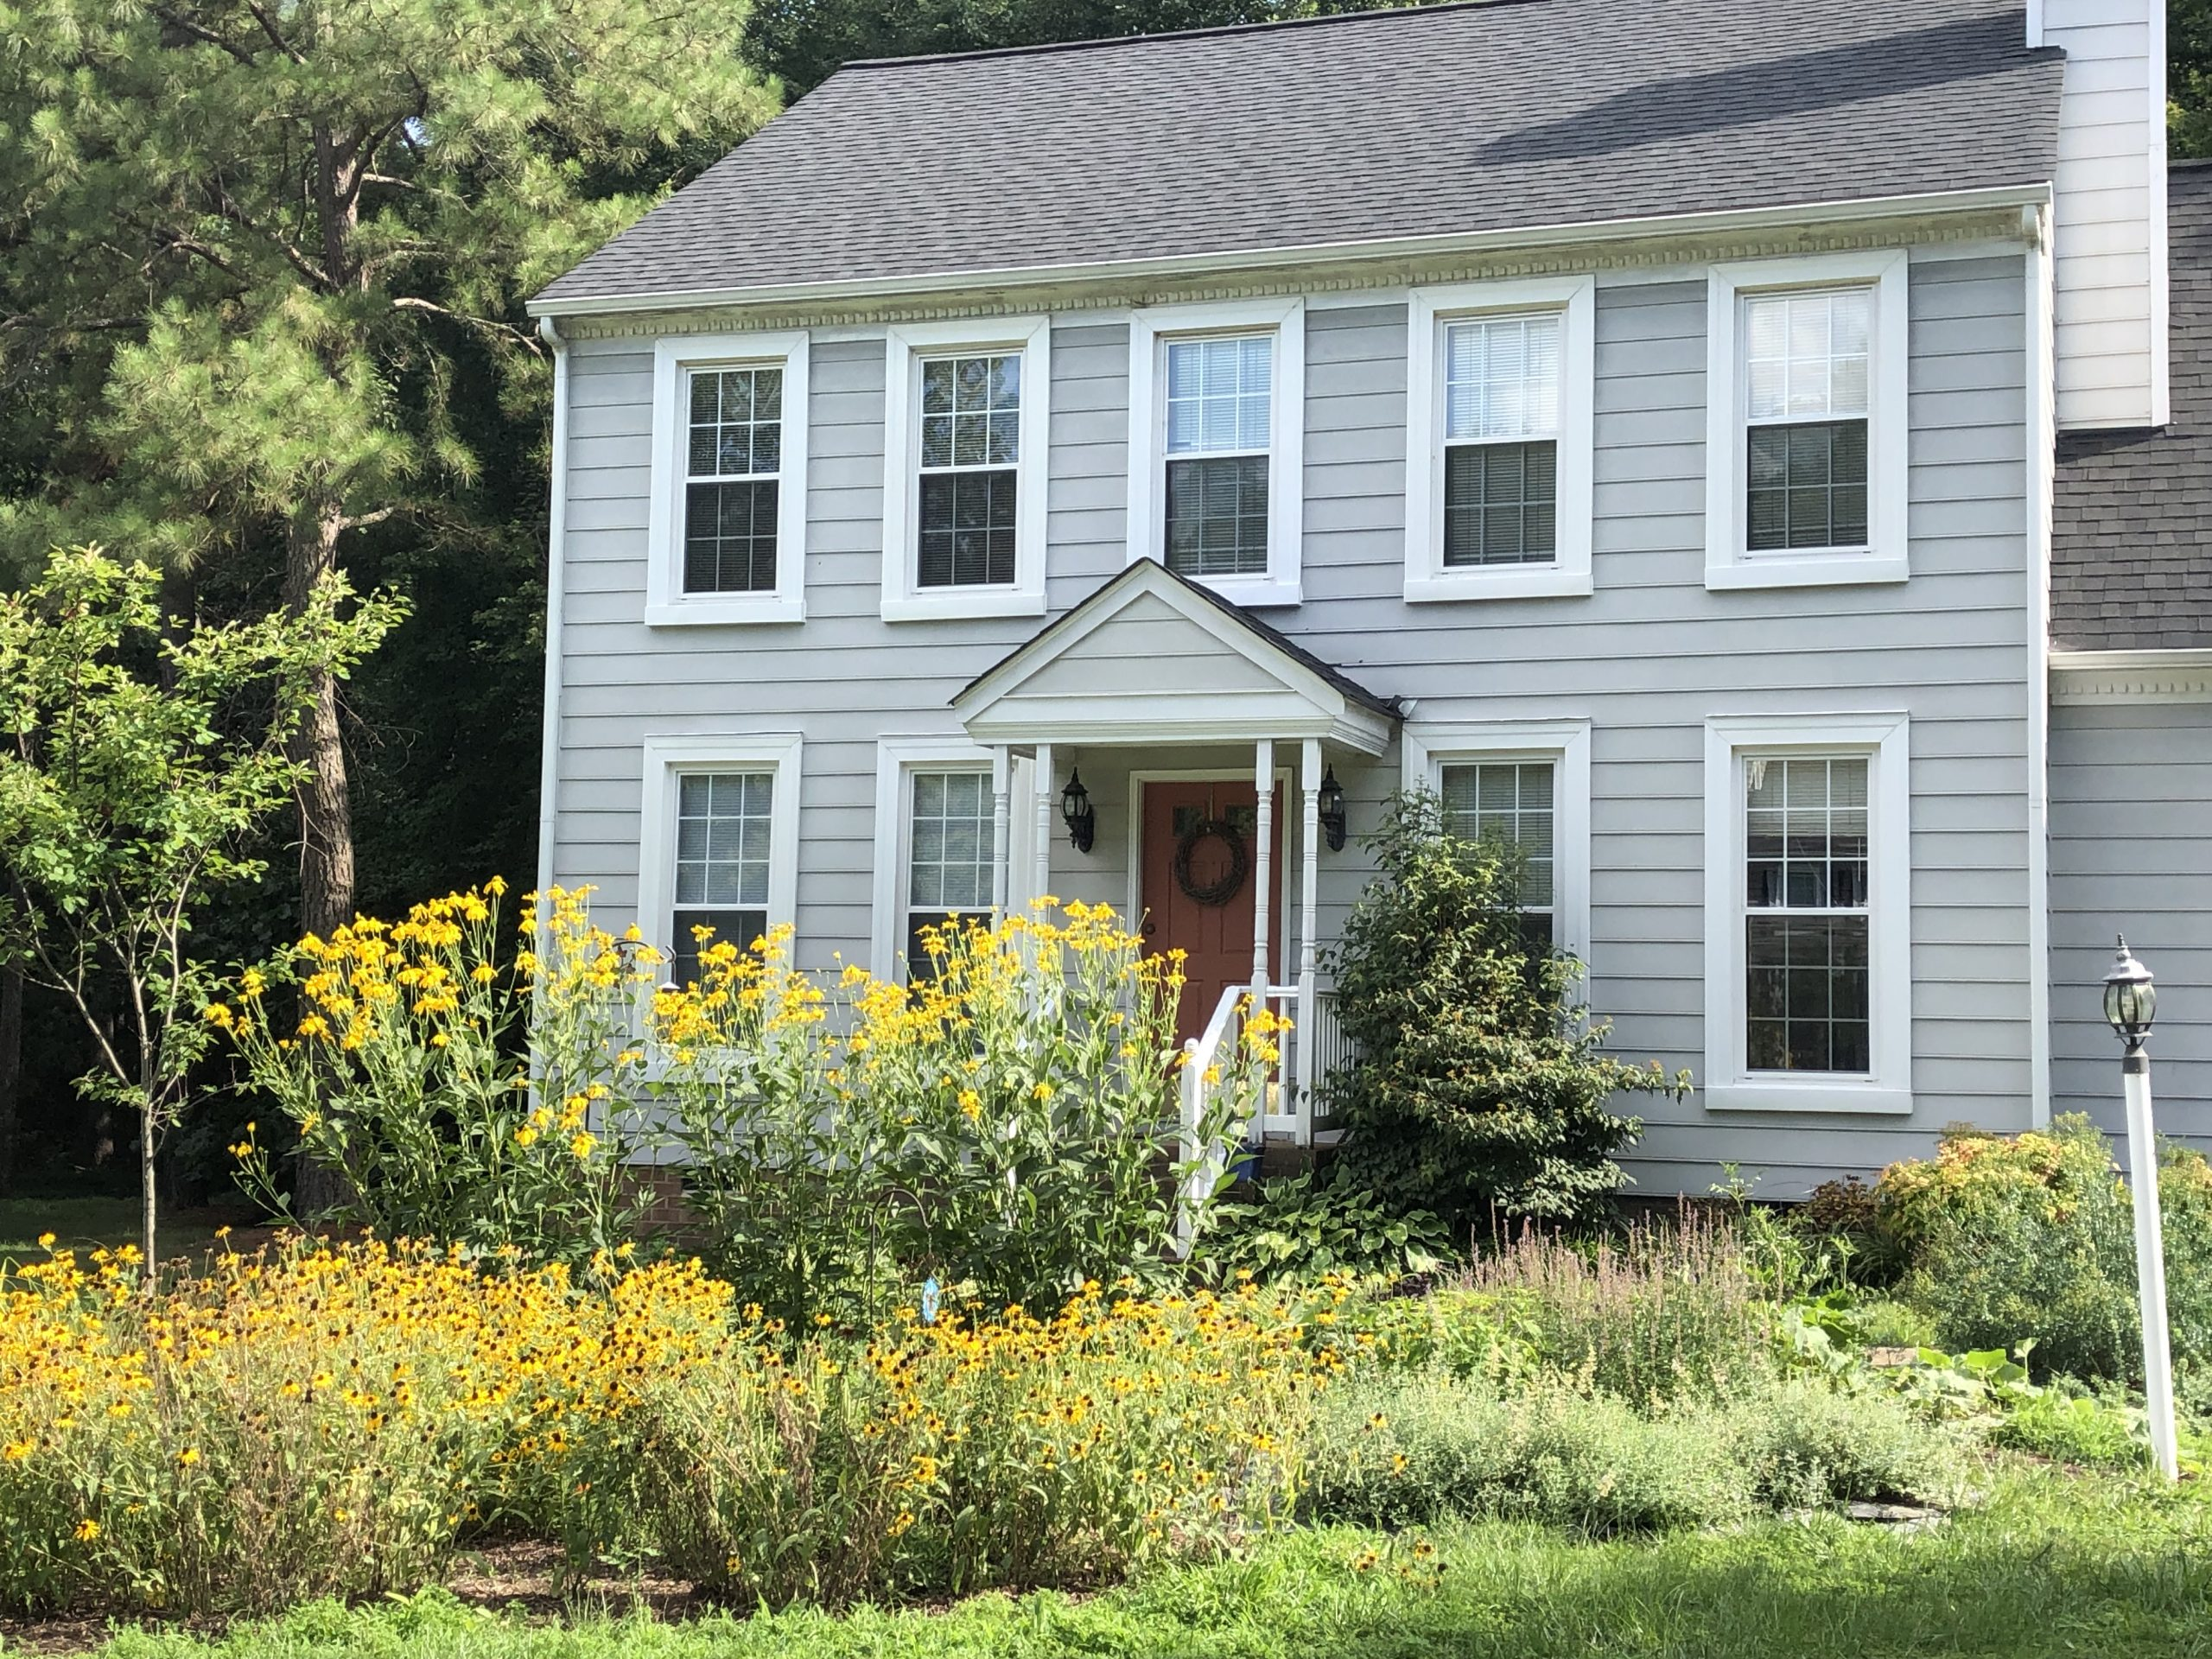 Front yard in July with Rudbeckia maxima blooming